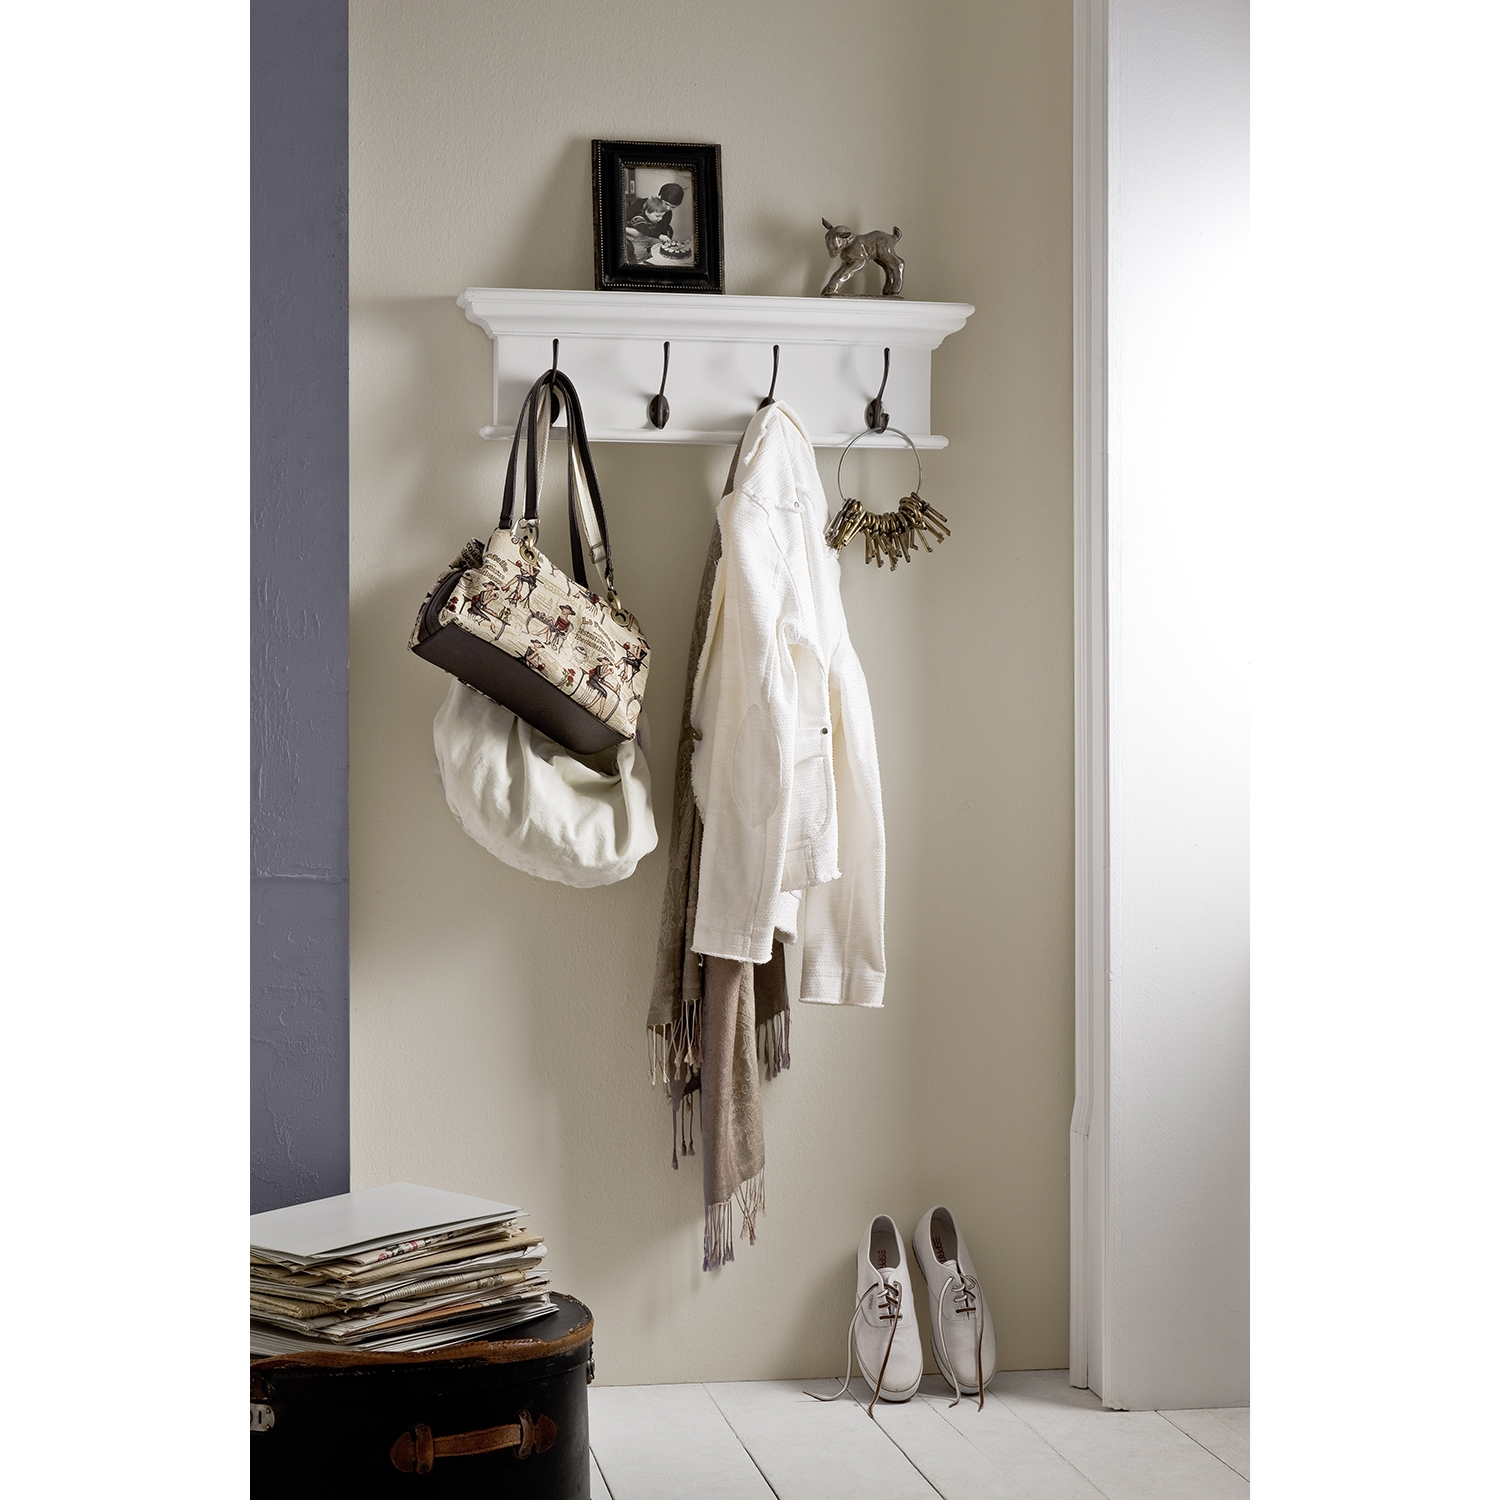 Halifax 4-Hook Coat Rack - Pure White - NSOLO-D160